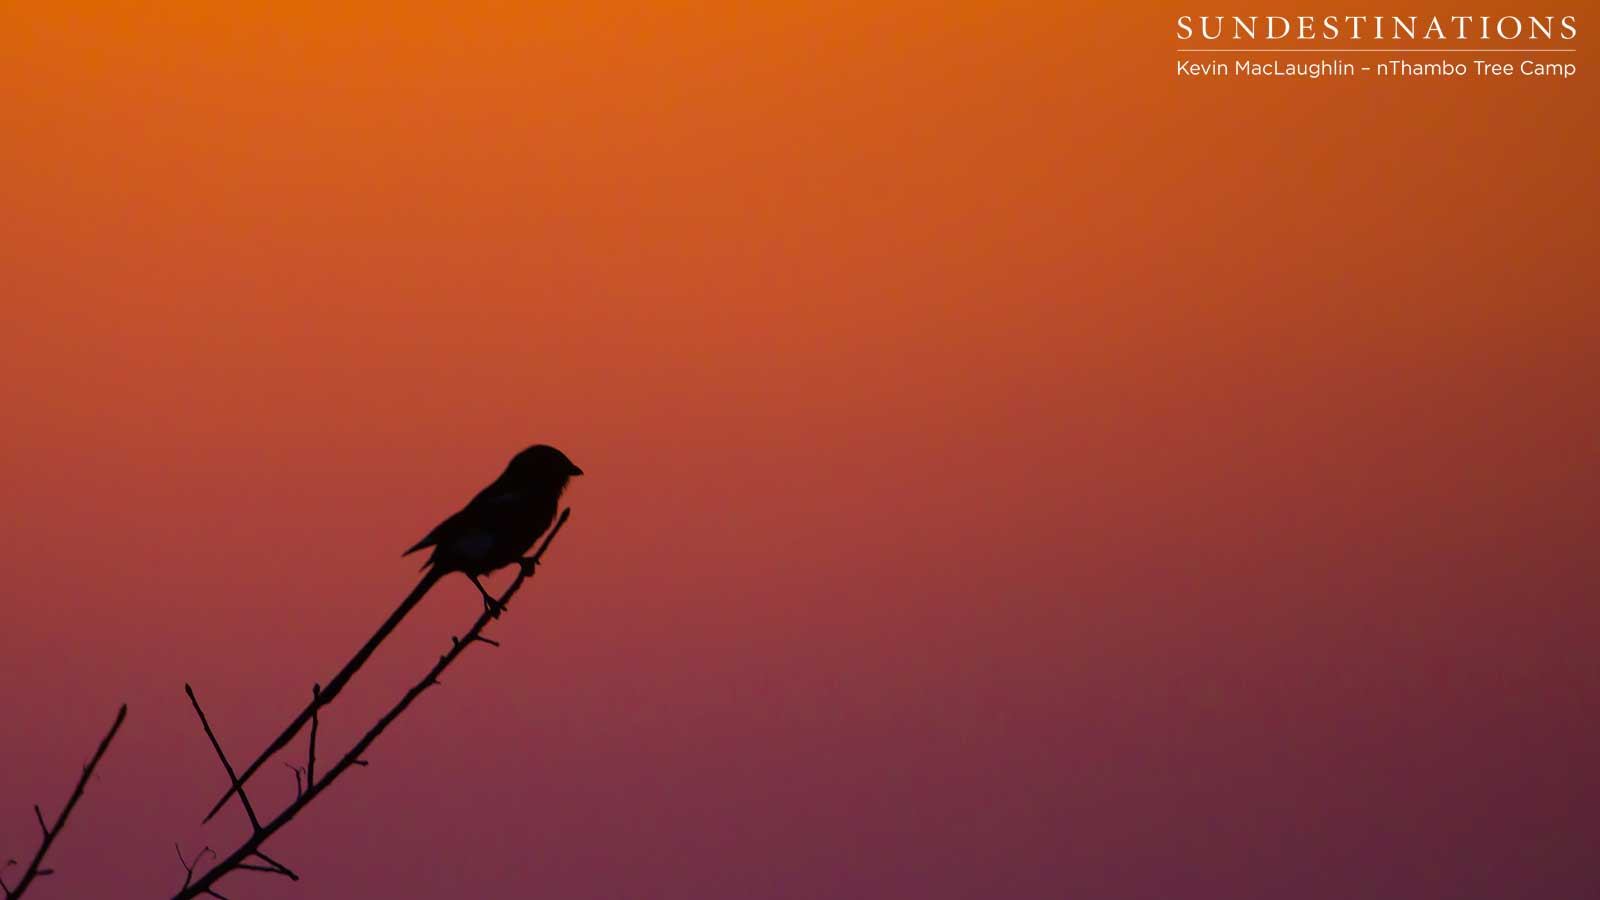 A magpie shrike soaking up the sunset